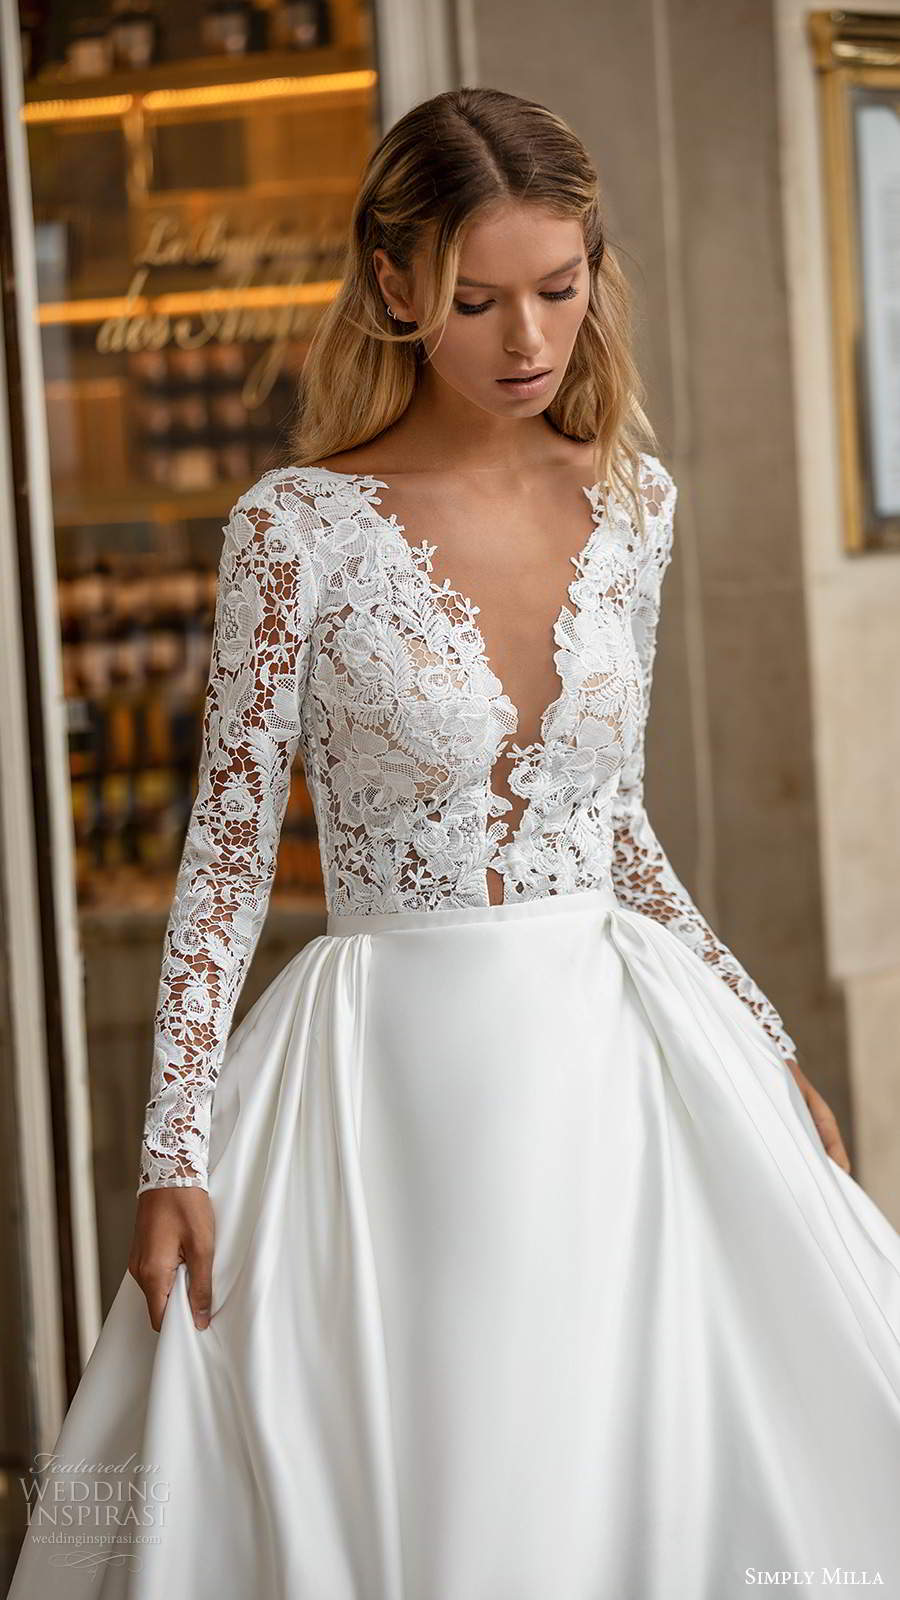 simply milla nova 2020 bridal long sleeves plunging neckline embellished lace bodice clean skirt a line ball gown wedding dress chapel train (5) zv